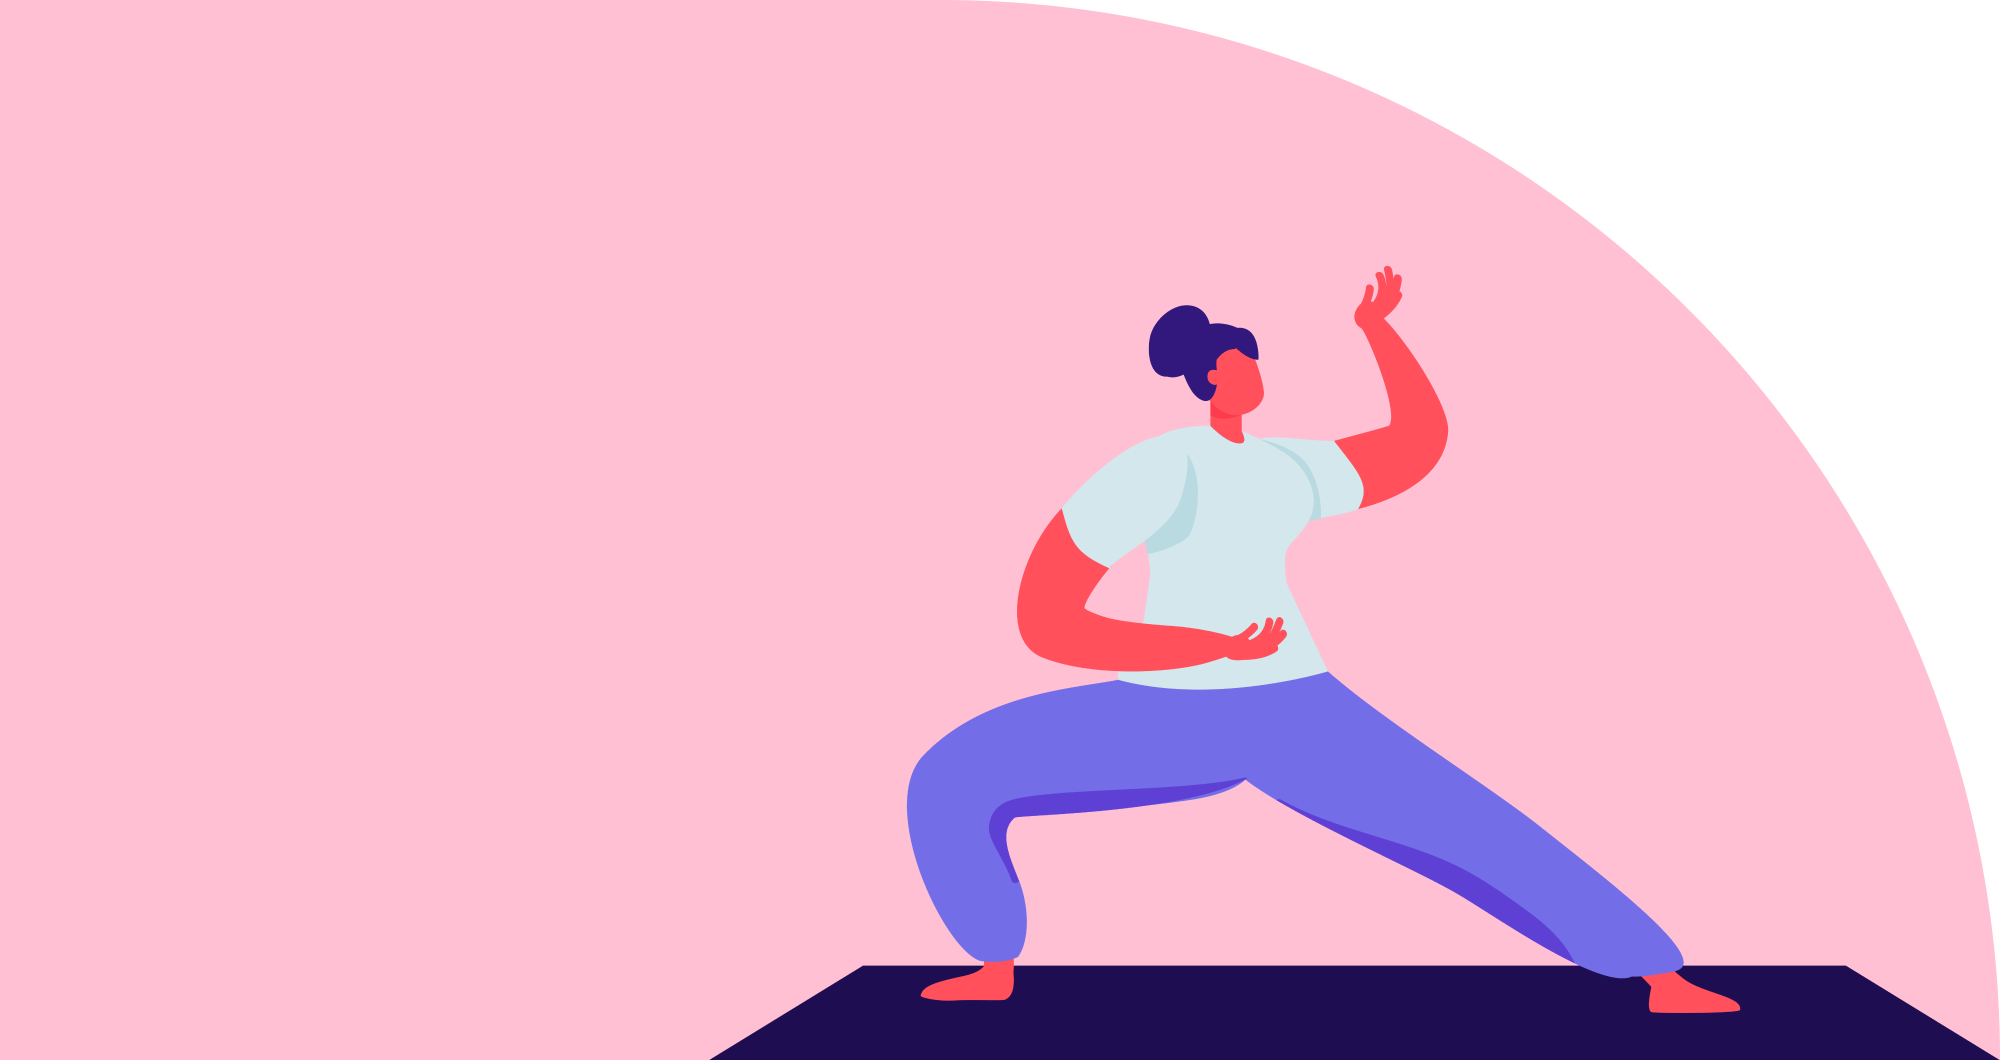 Illustration of a woman doing Yoga